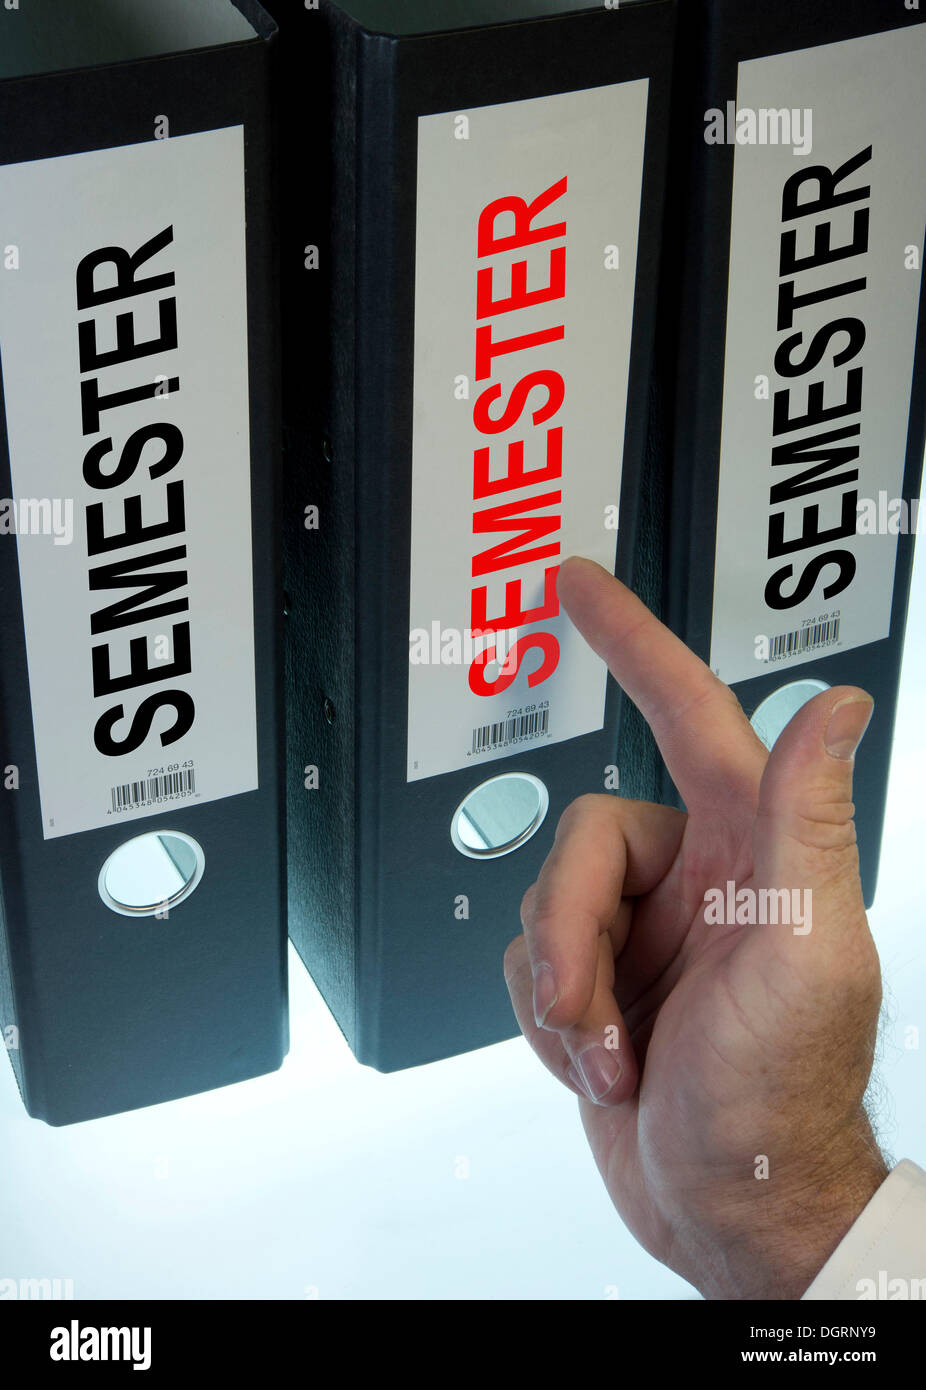 Hand pointing to a file folder labeled 'Semester' - Stock Image